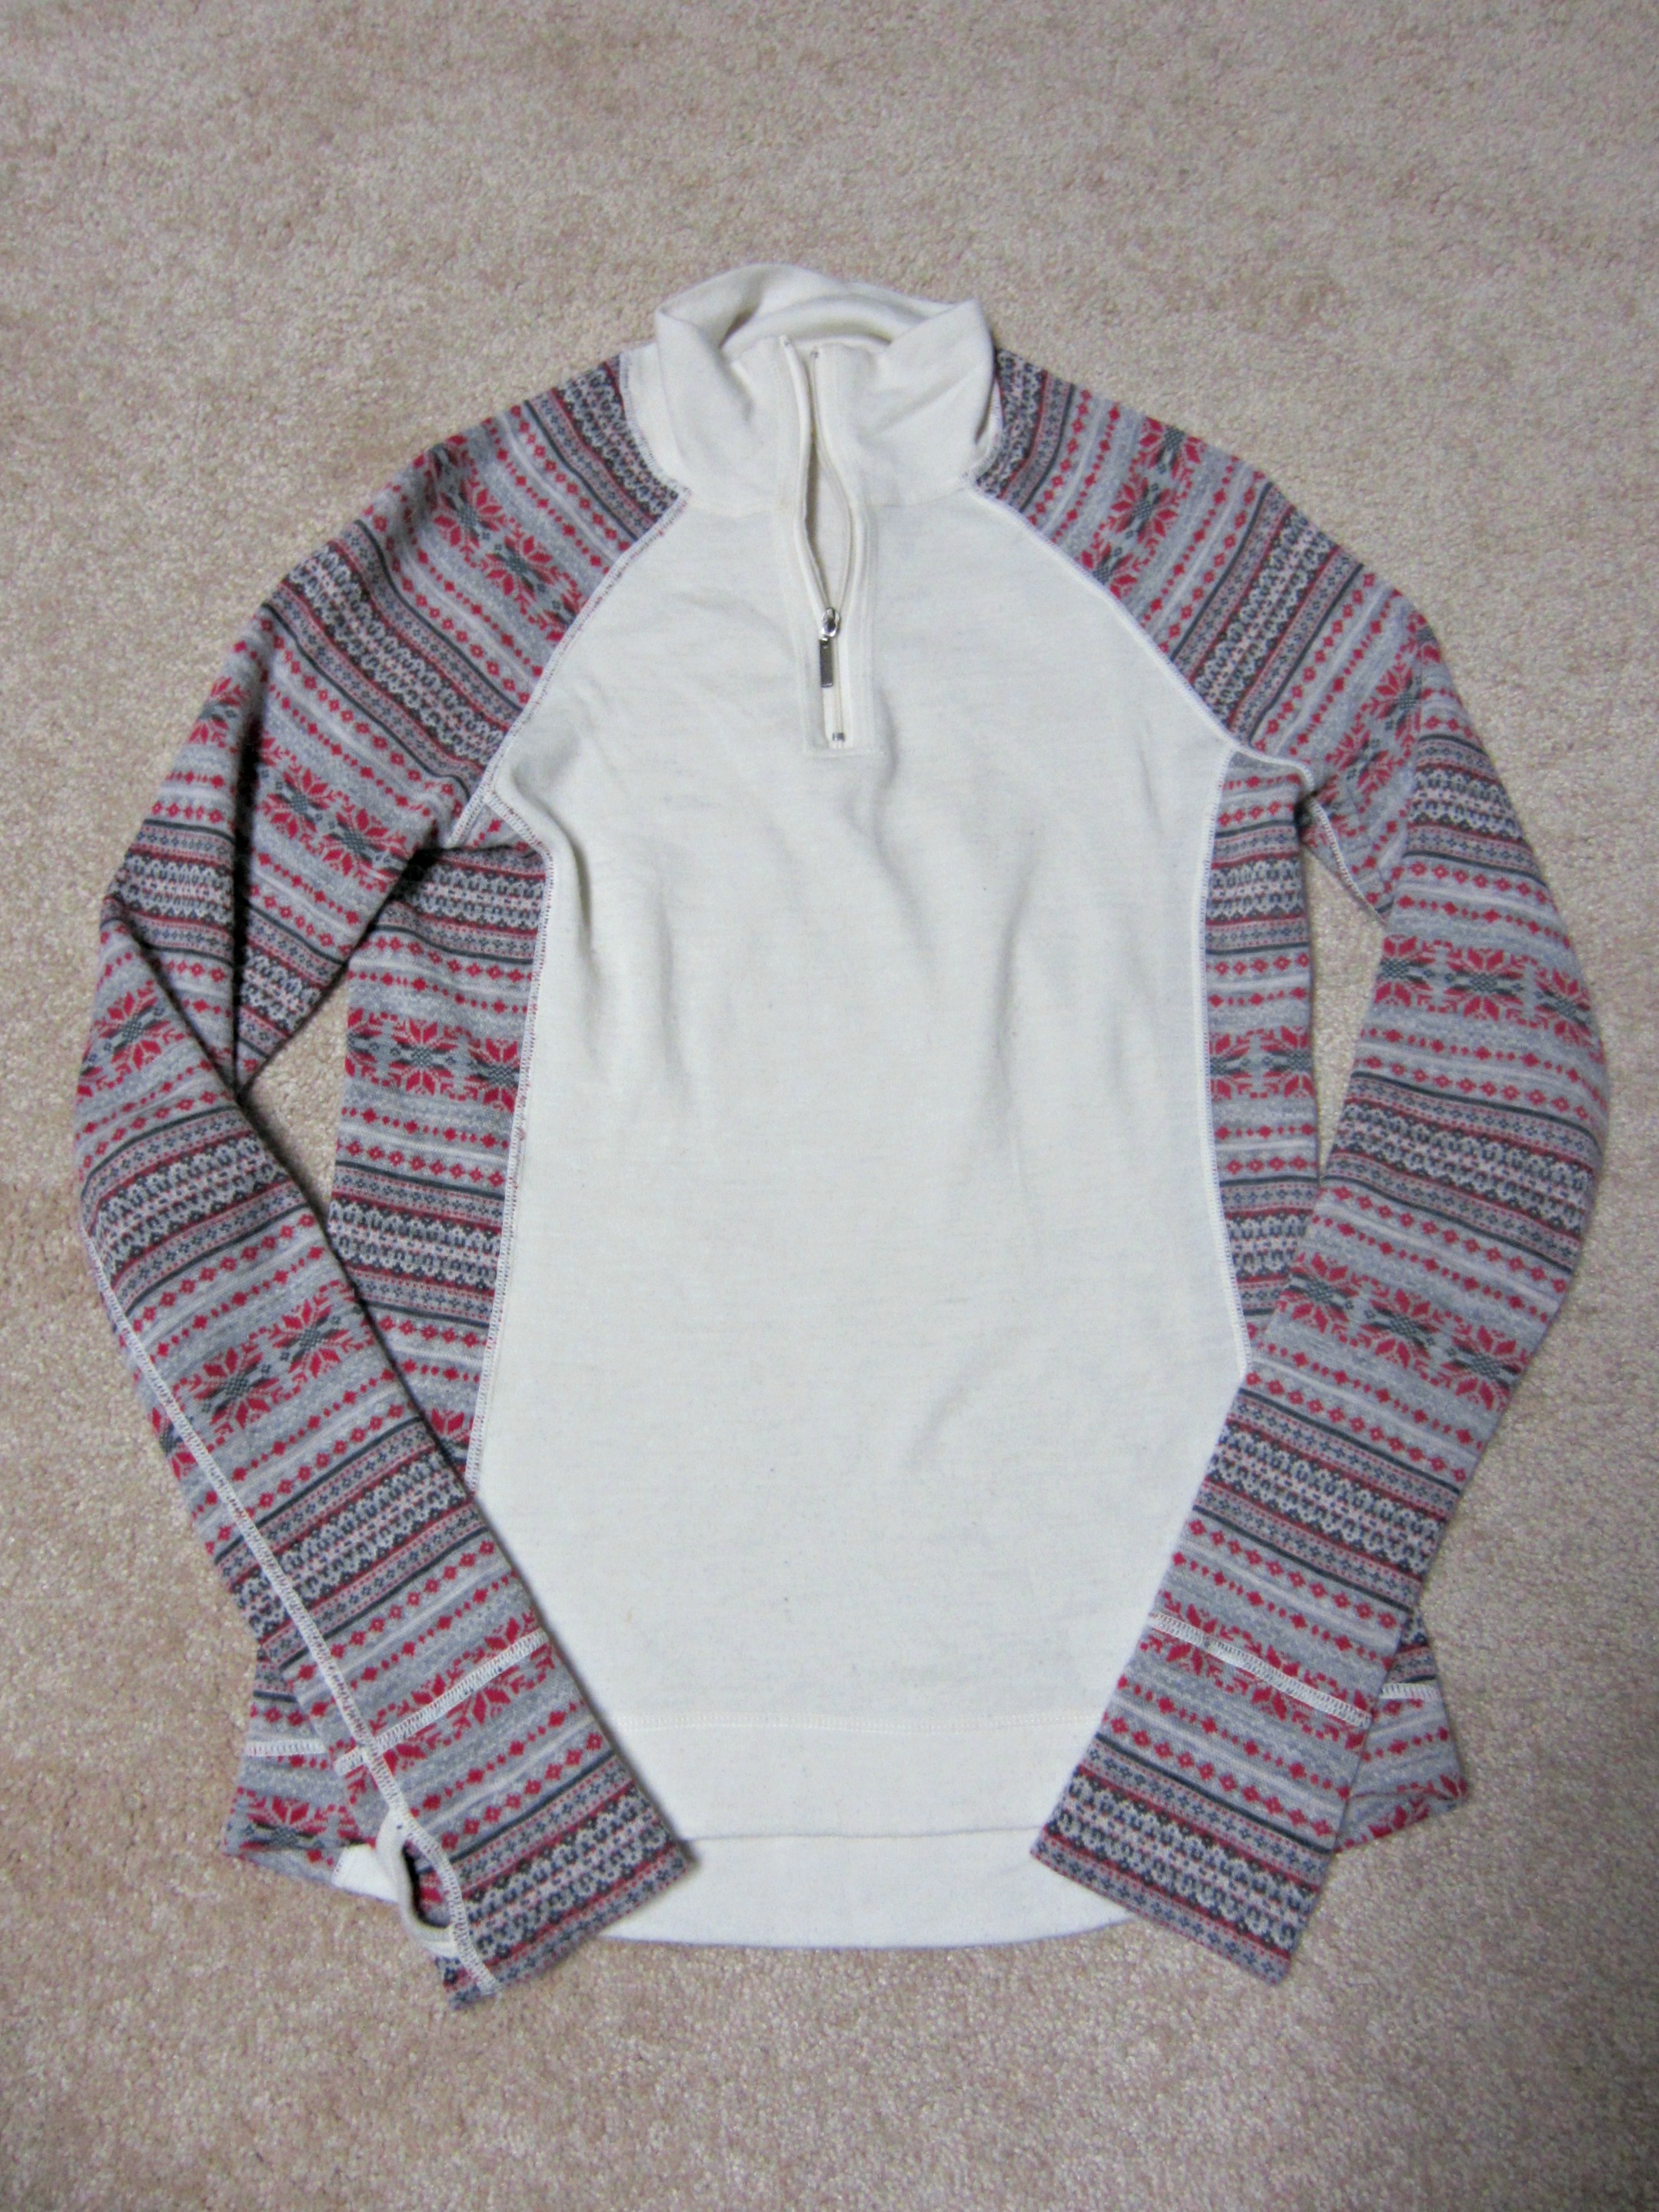 Dakini 1/4 zip sweater